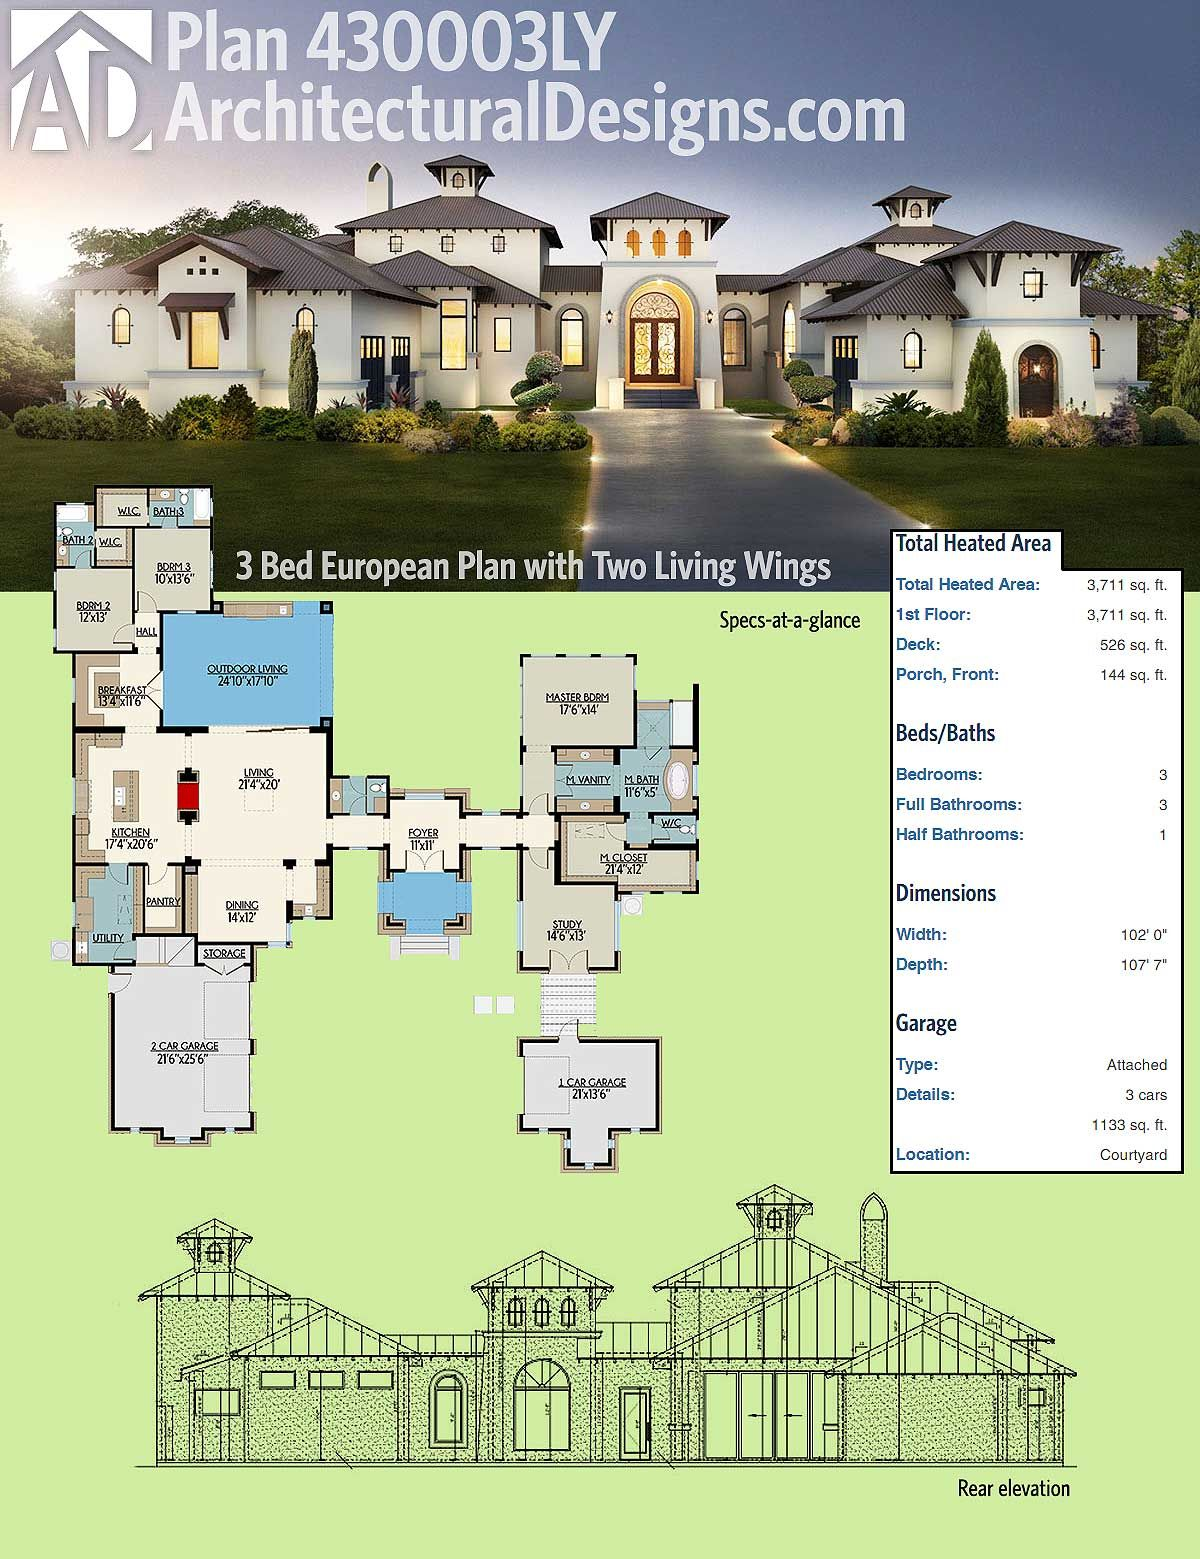 Plan 430003ly 3 Bed Hill Country House Plan With Two Living Wings In 2020 House Plans How To Plan European Plan